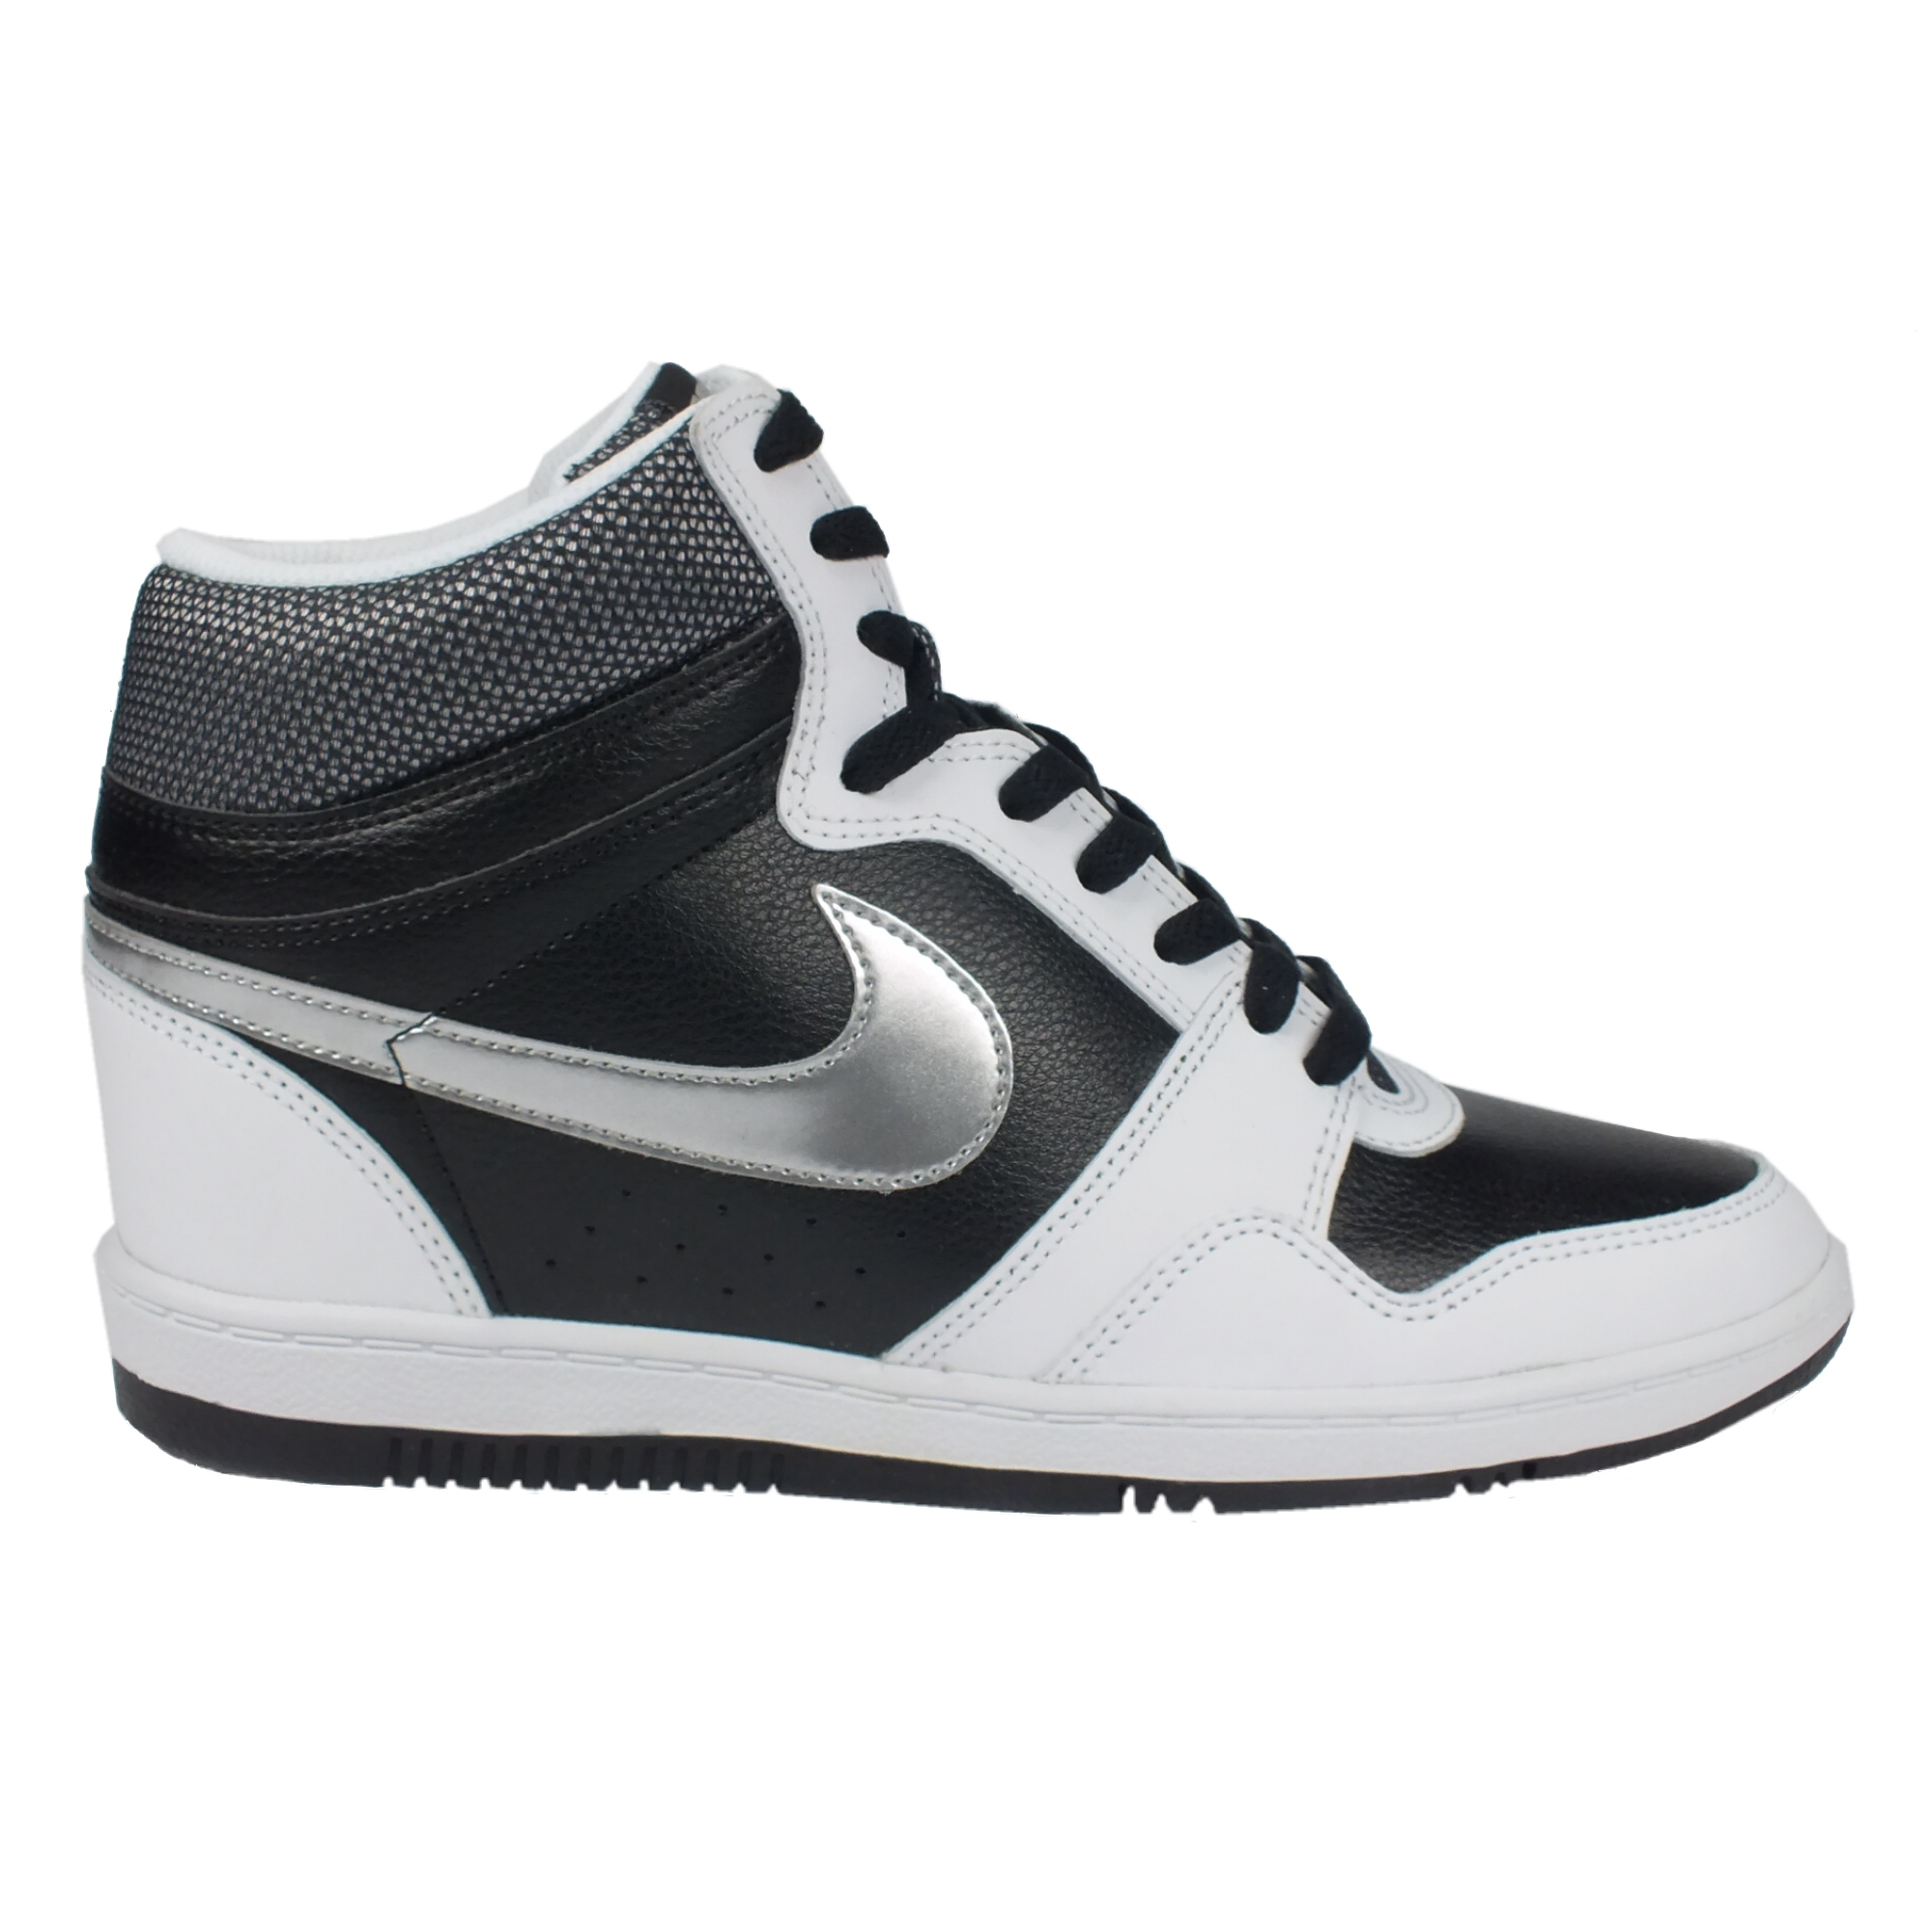 Nike Force Sky Hi Leather Women Sneaker with hidden wedge ...